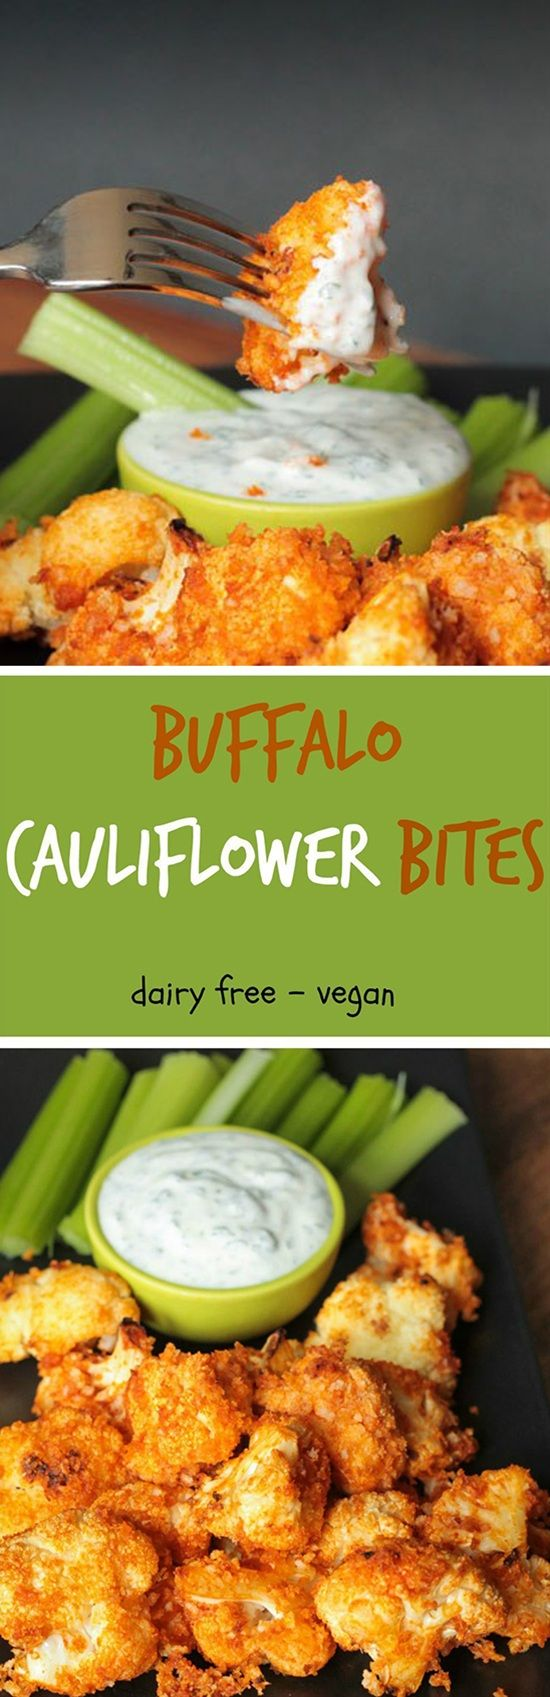 People usually say that vegans don't enjoy their food, as there aren't many delicious meals to choose from. Well, we are here today to prove them wrong, we brought you 26 yummy vegan recipes that no one can resist, and that's just a small portion of what you can find if you look carefully.